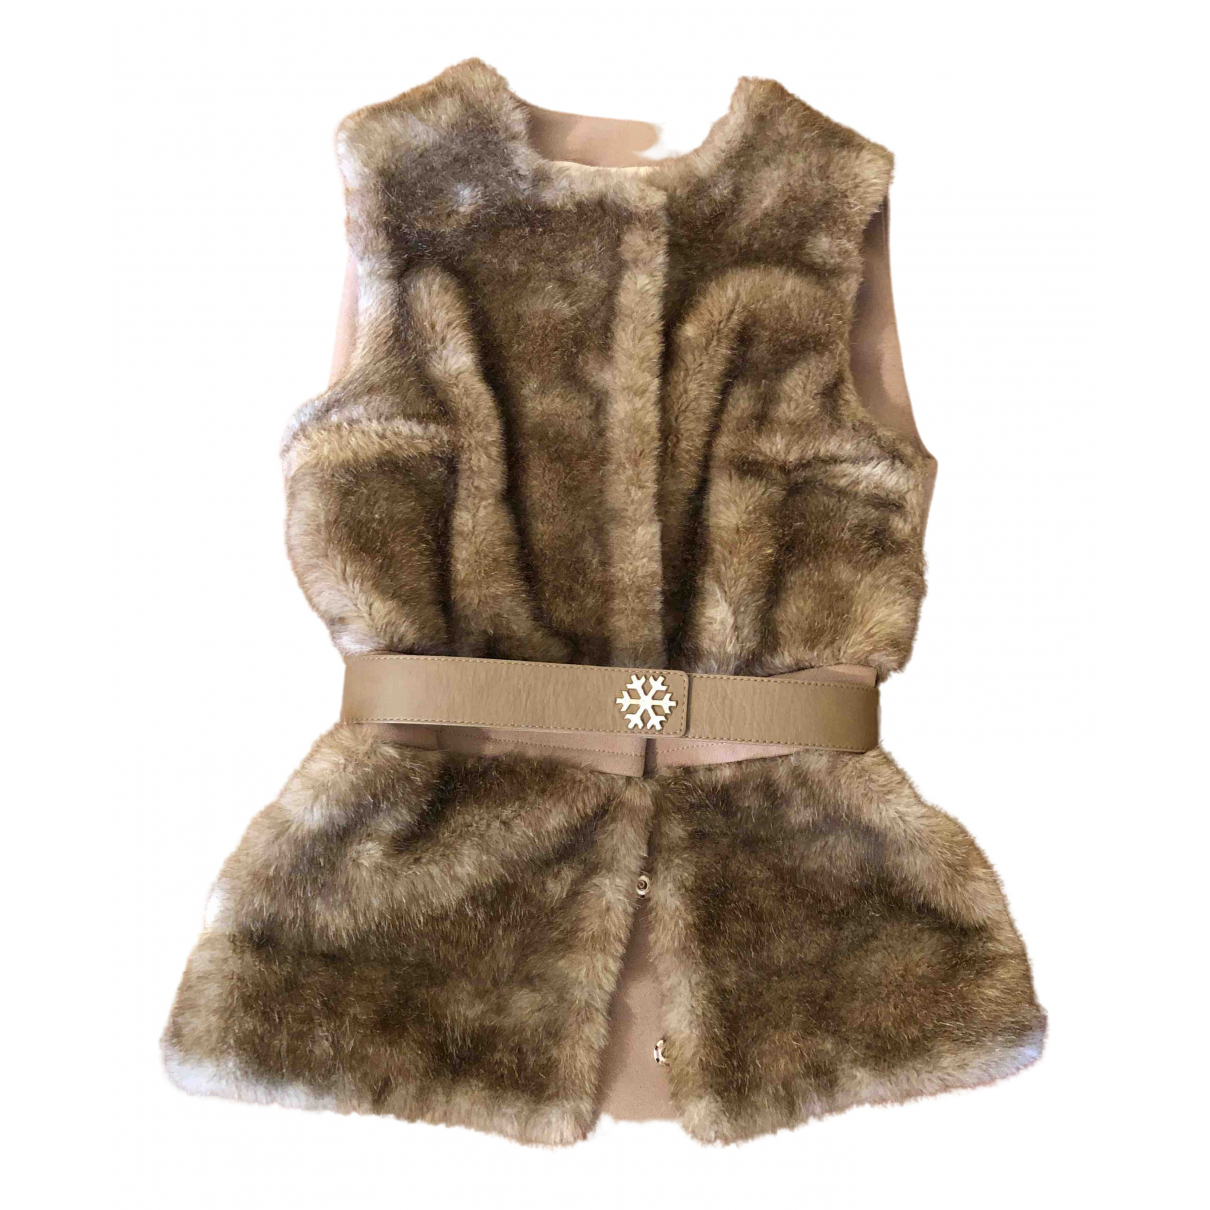 Elisabetta Franchi \N Beige Faux fur coat for Women 40 IT